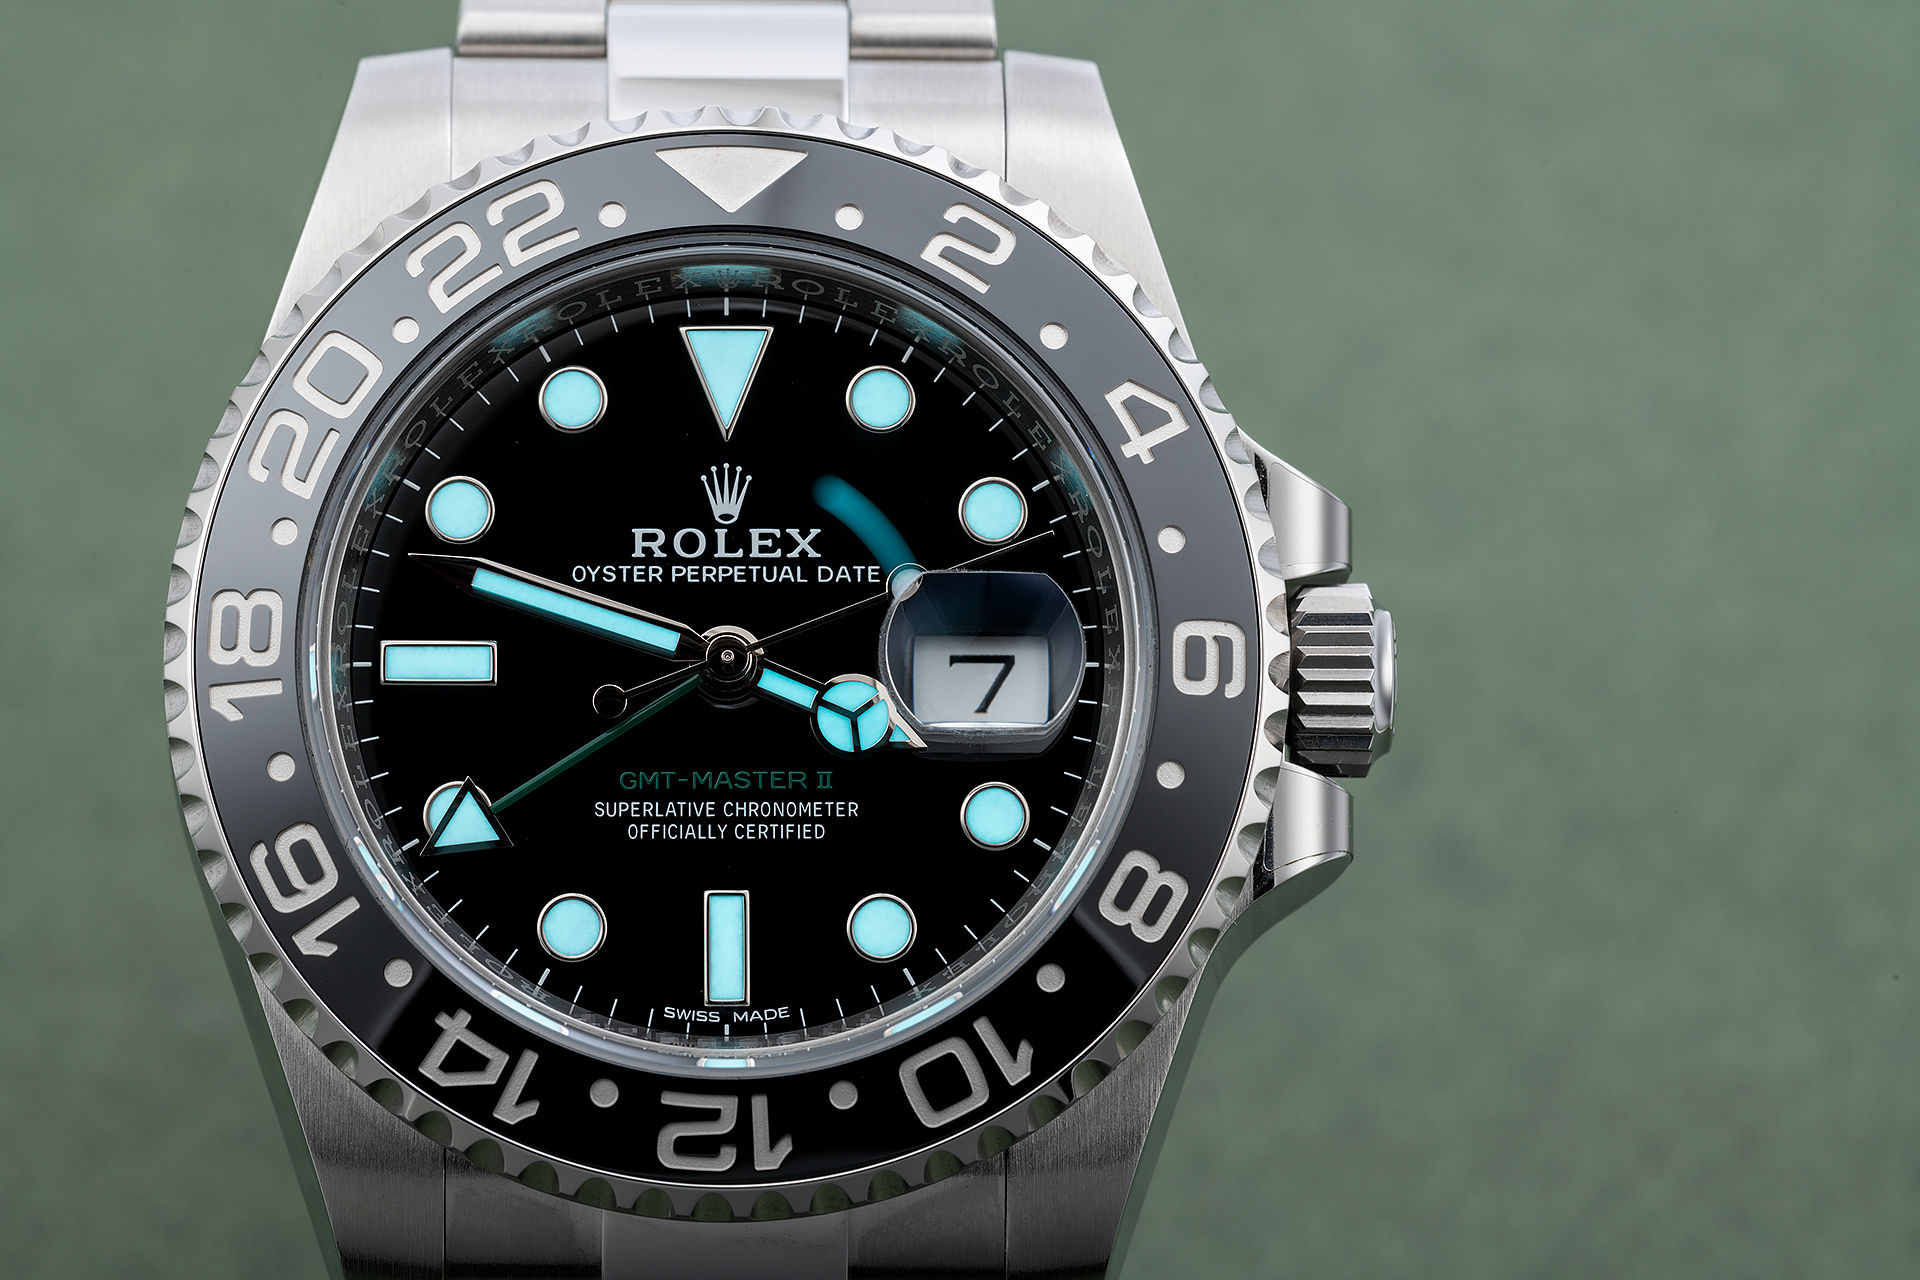 ref 116710LN | 5 Year Warranty 'Totally Complete' | Rolex GMT-Master II